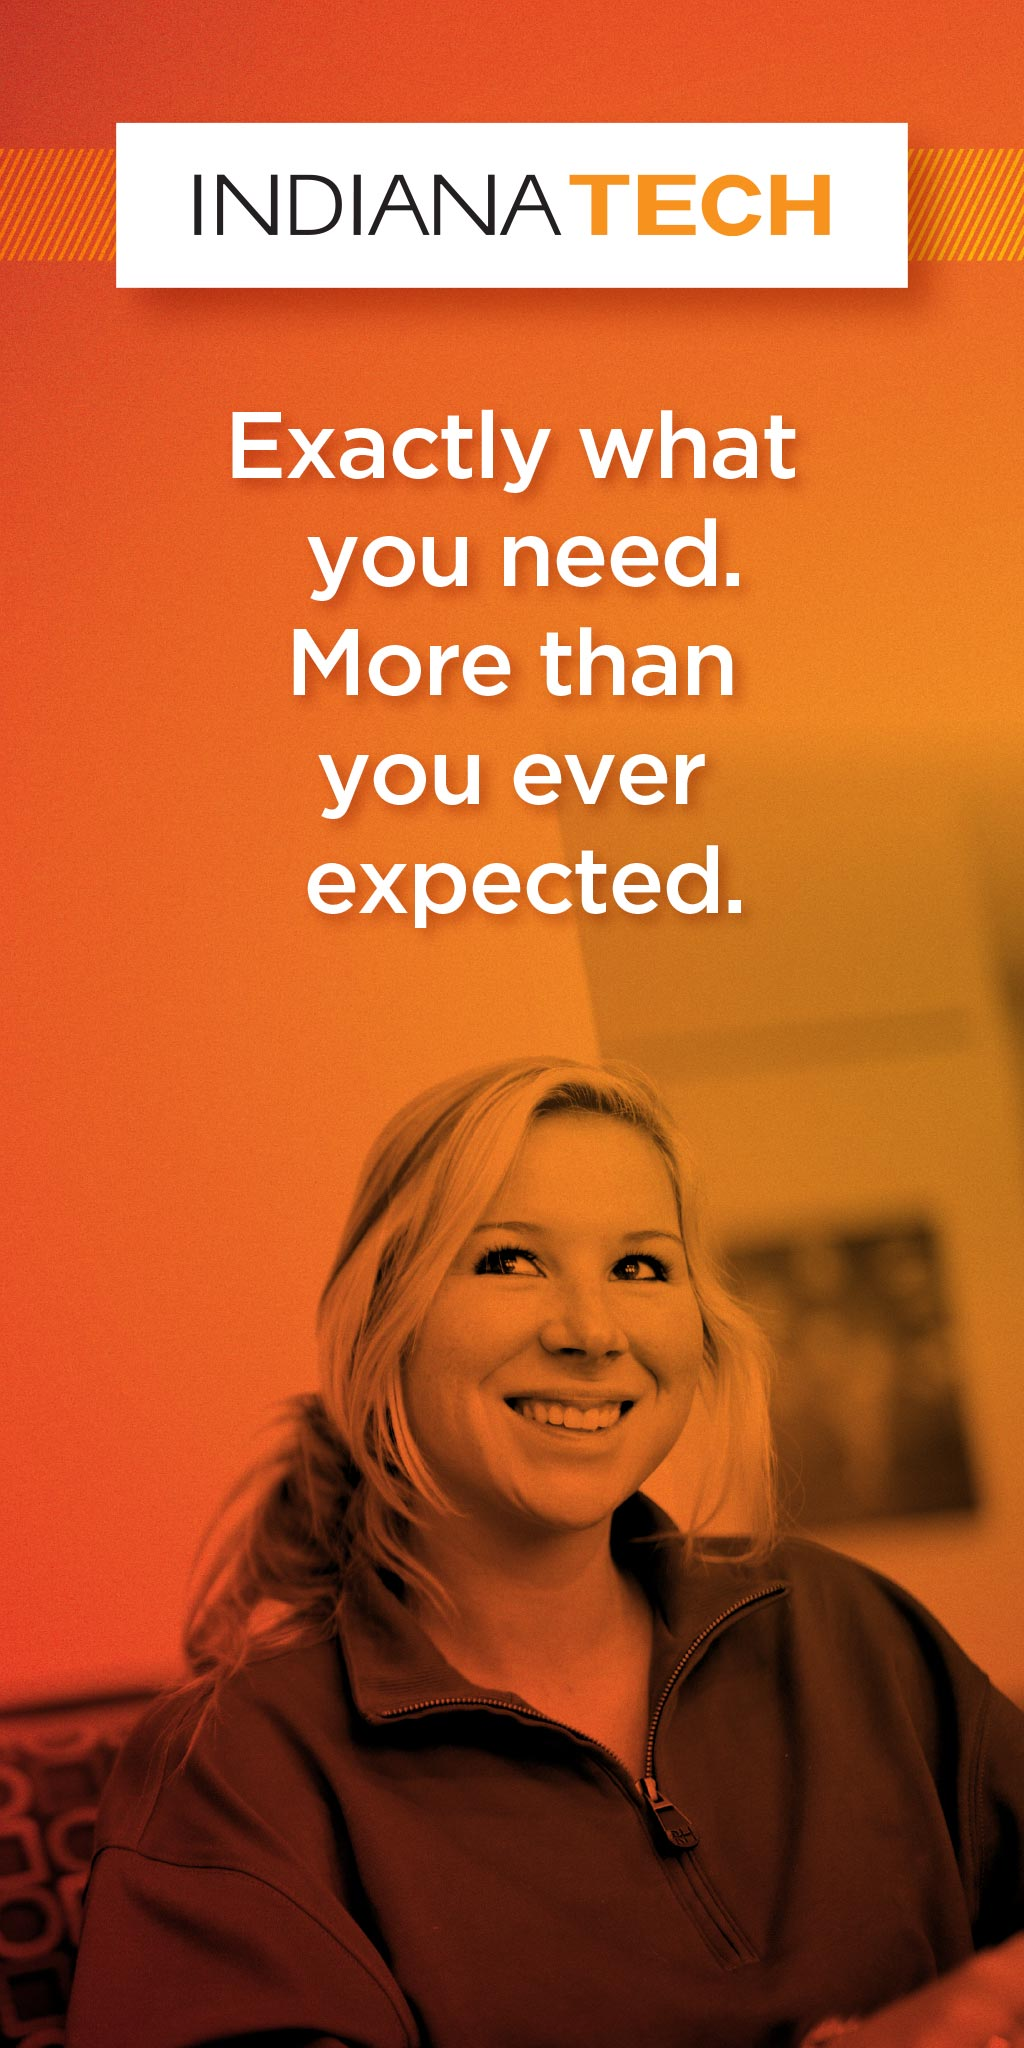 Indiana Tech: web banner